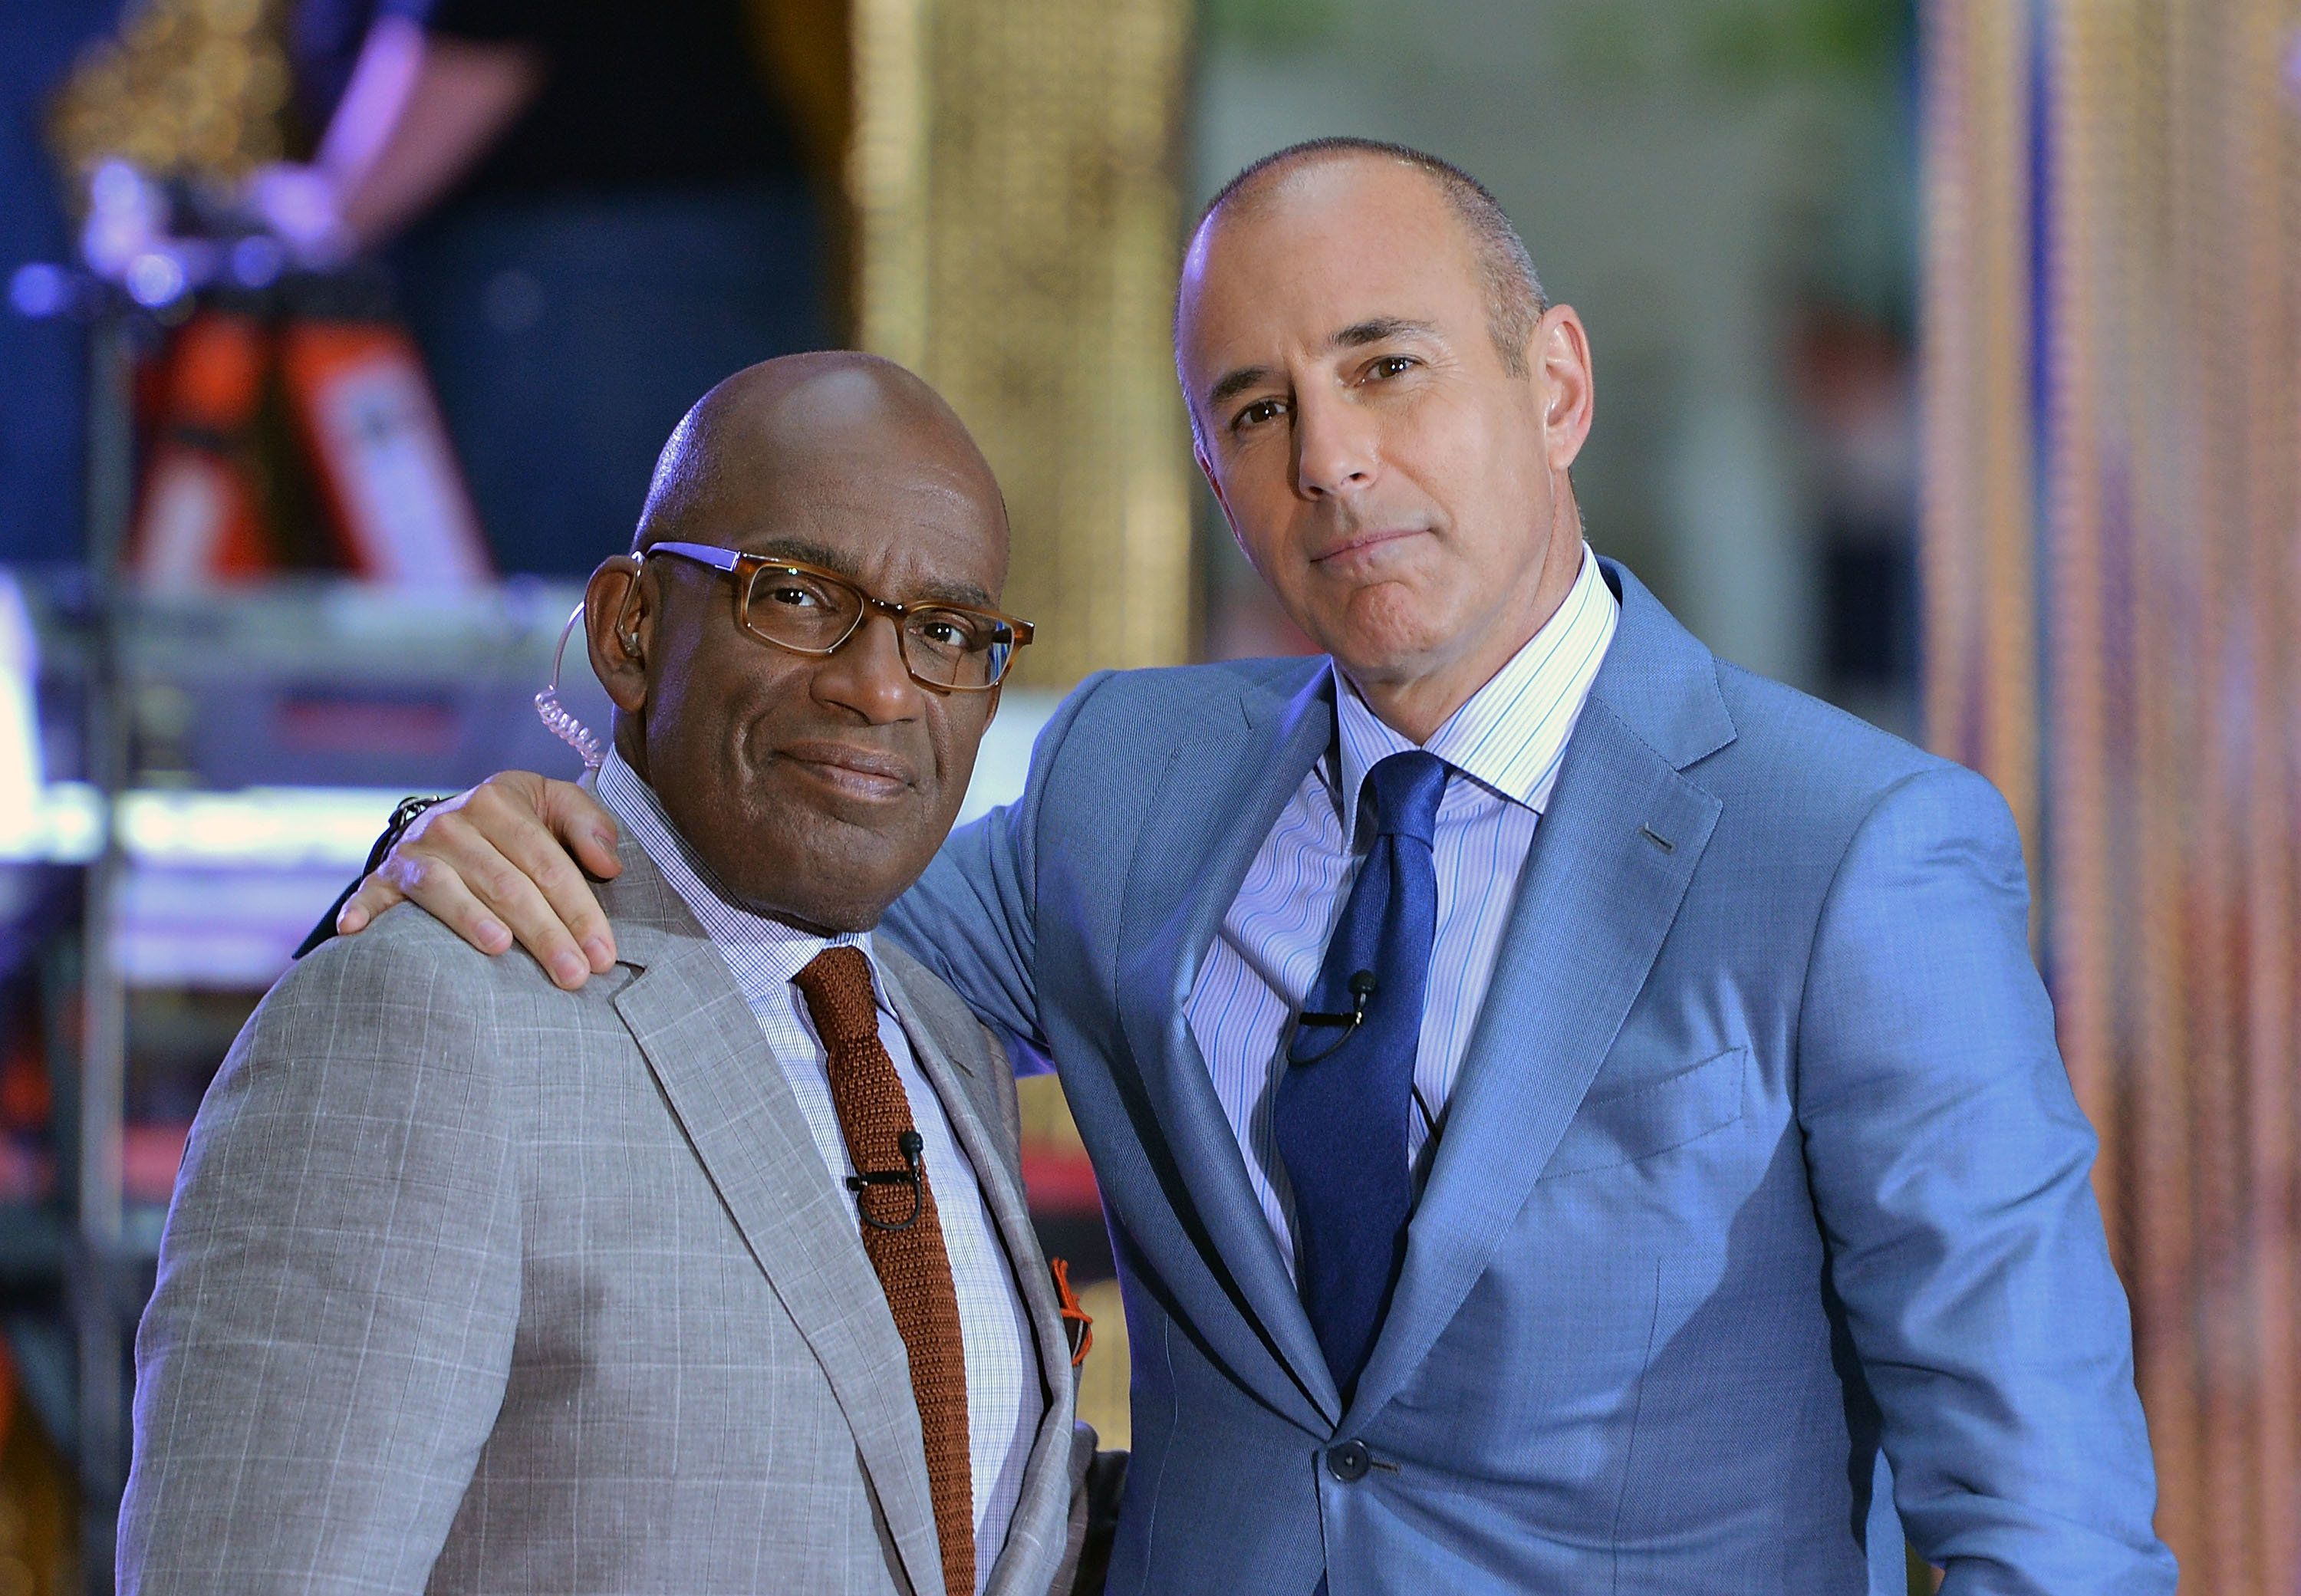 NEW YORK, NY - MAY 16:  Today co-anchors Al Roker (L) and Matt Lauer at NBC's 'Today' at Rockefeller Center on May 16, 2014 in New York City.  (Photo by Slaven Vlasic/Getty Images)